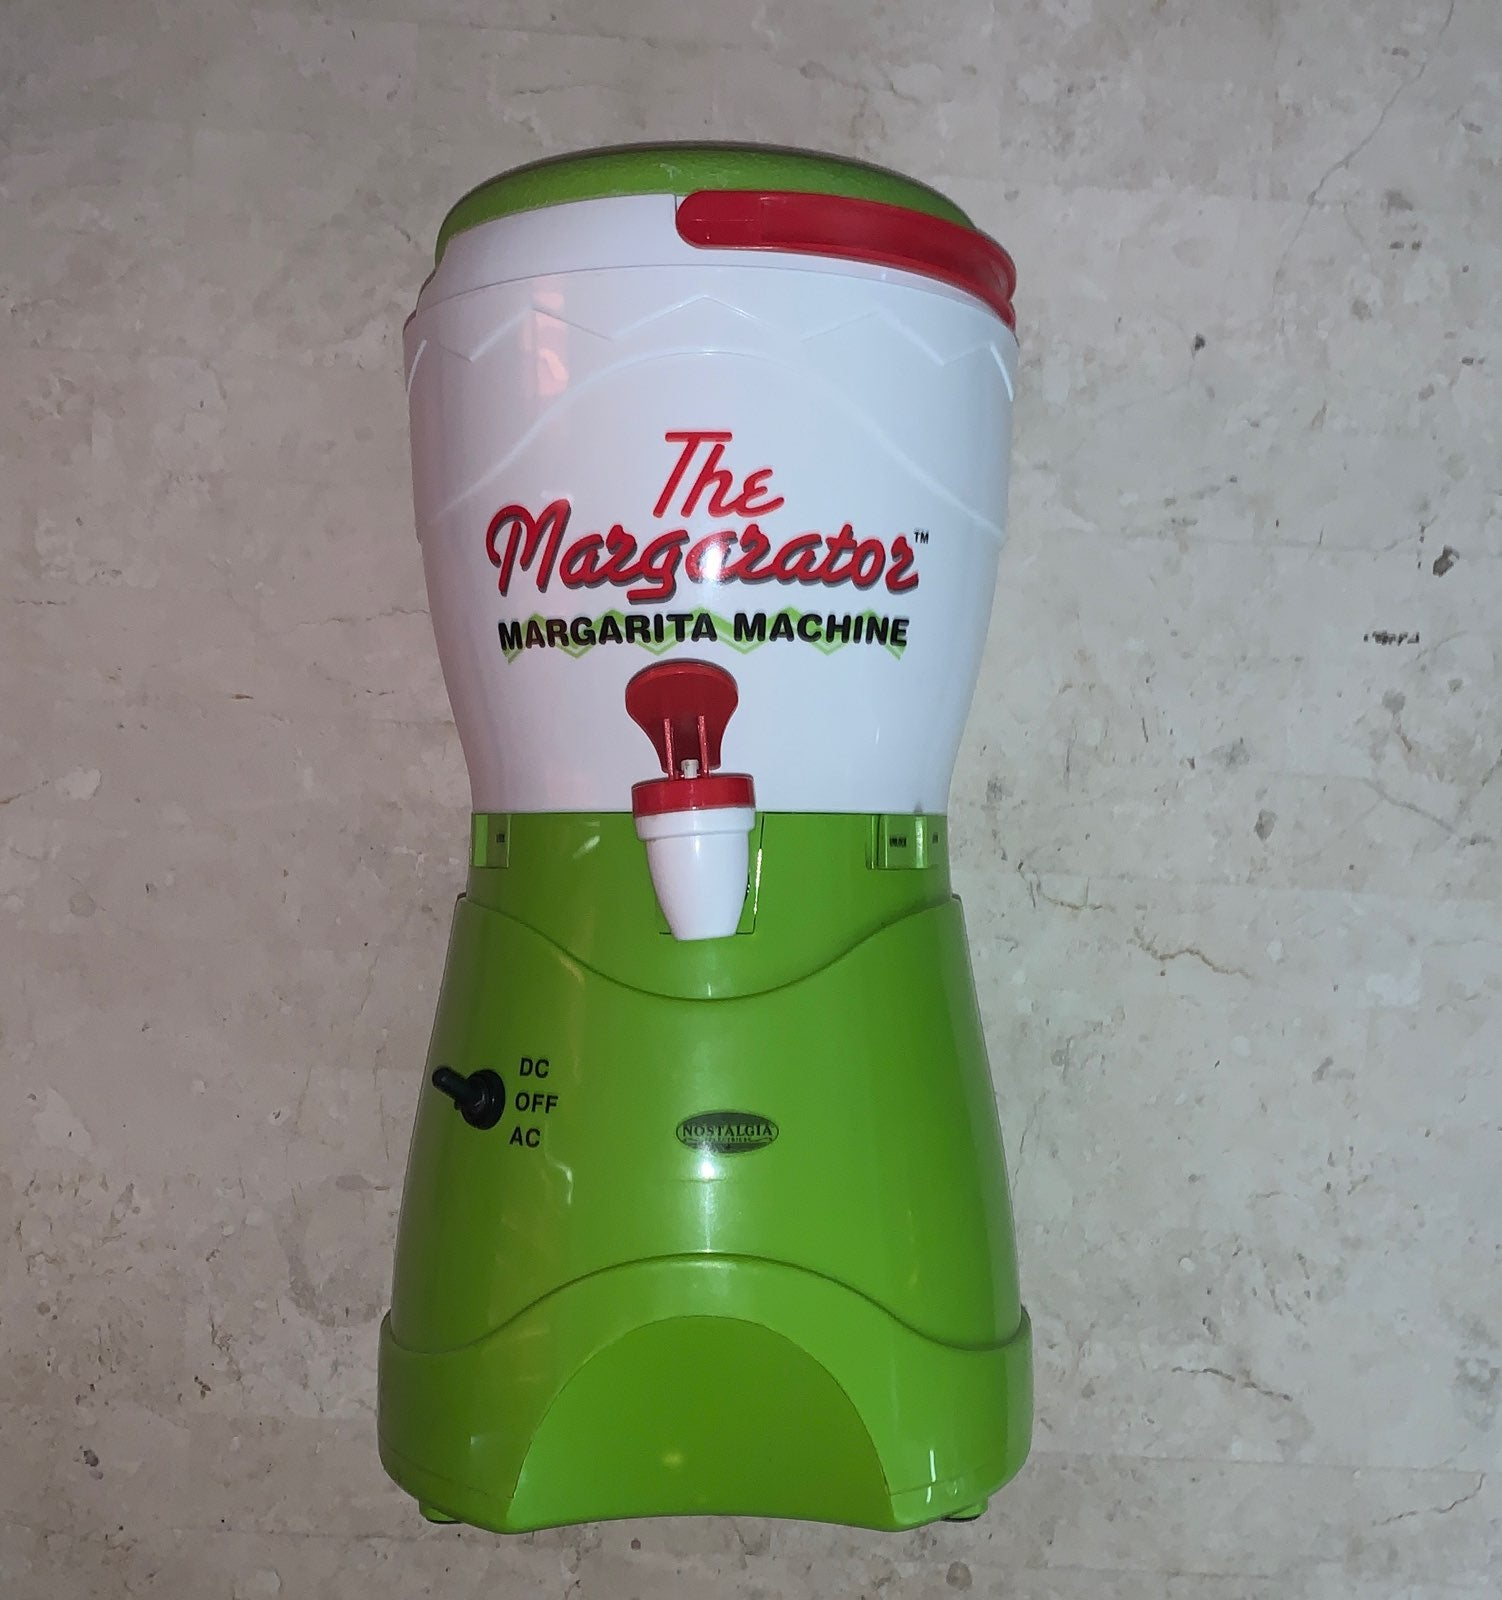 The Margarator - margarita machine